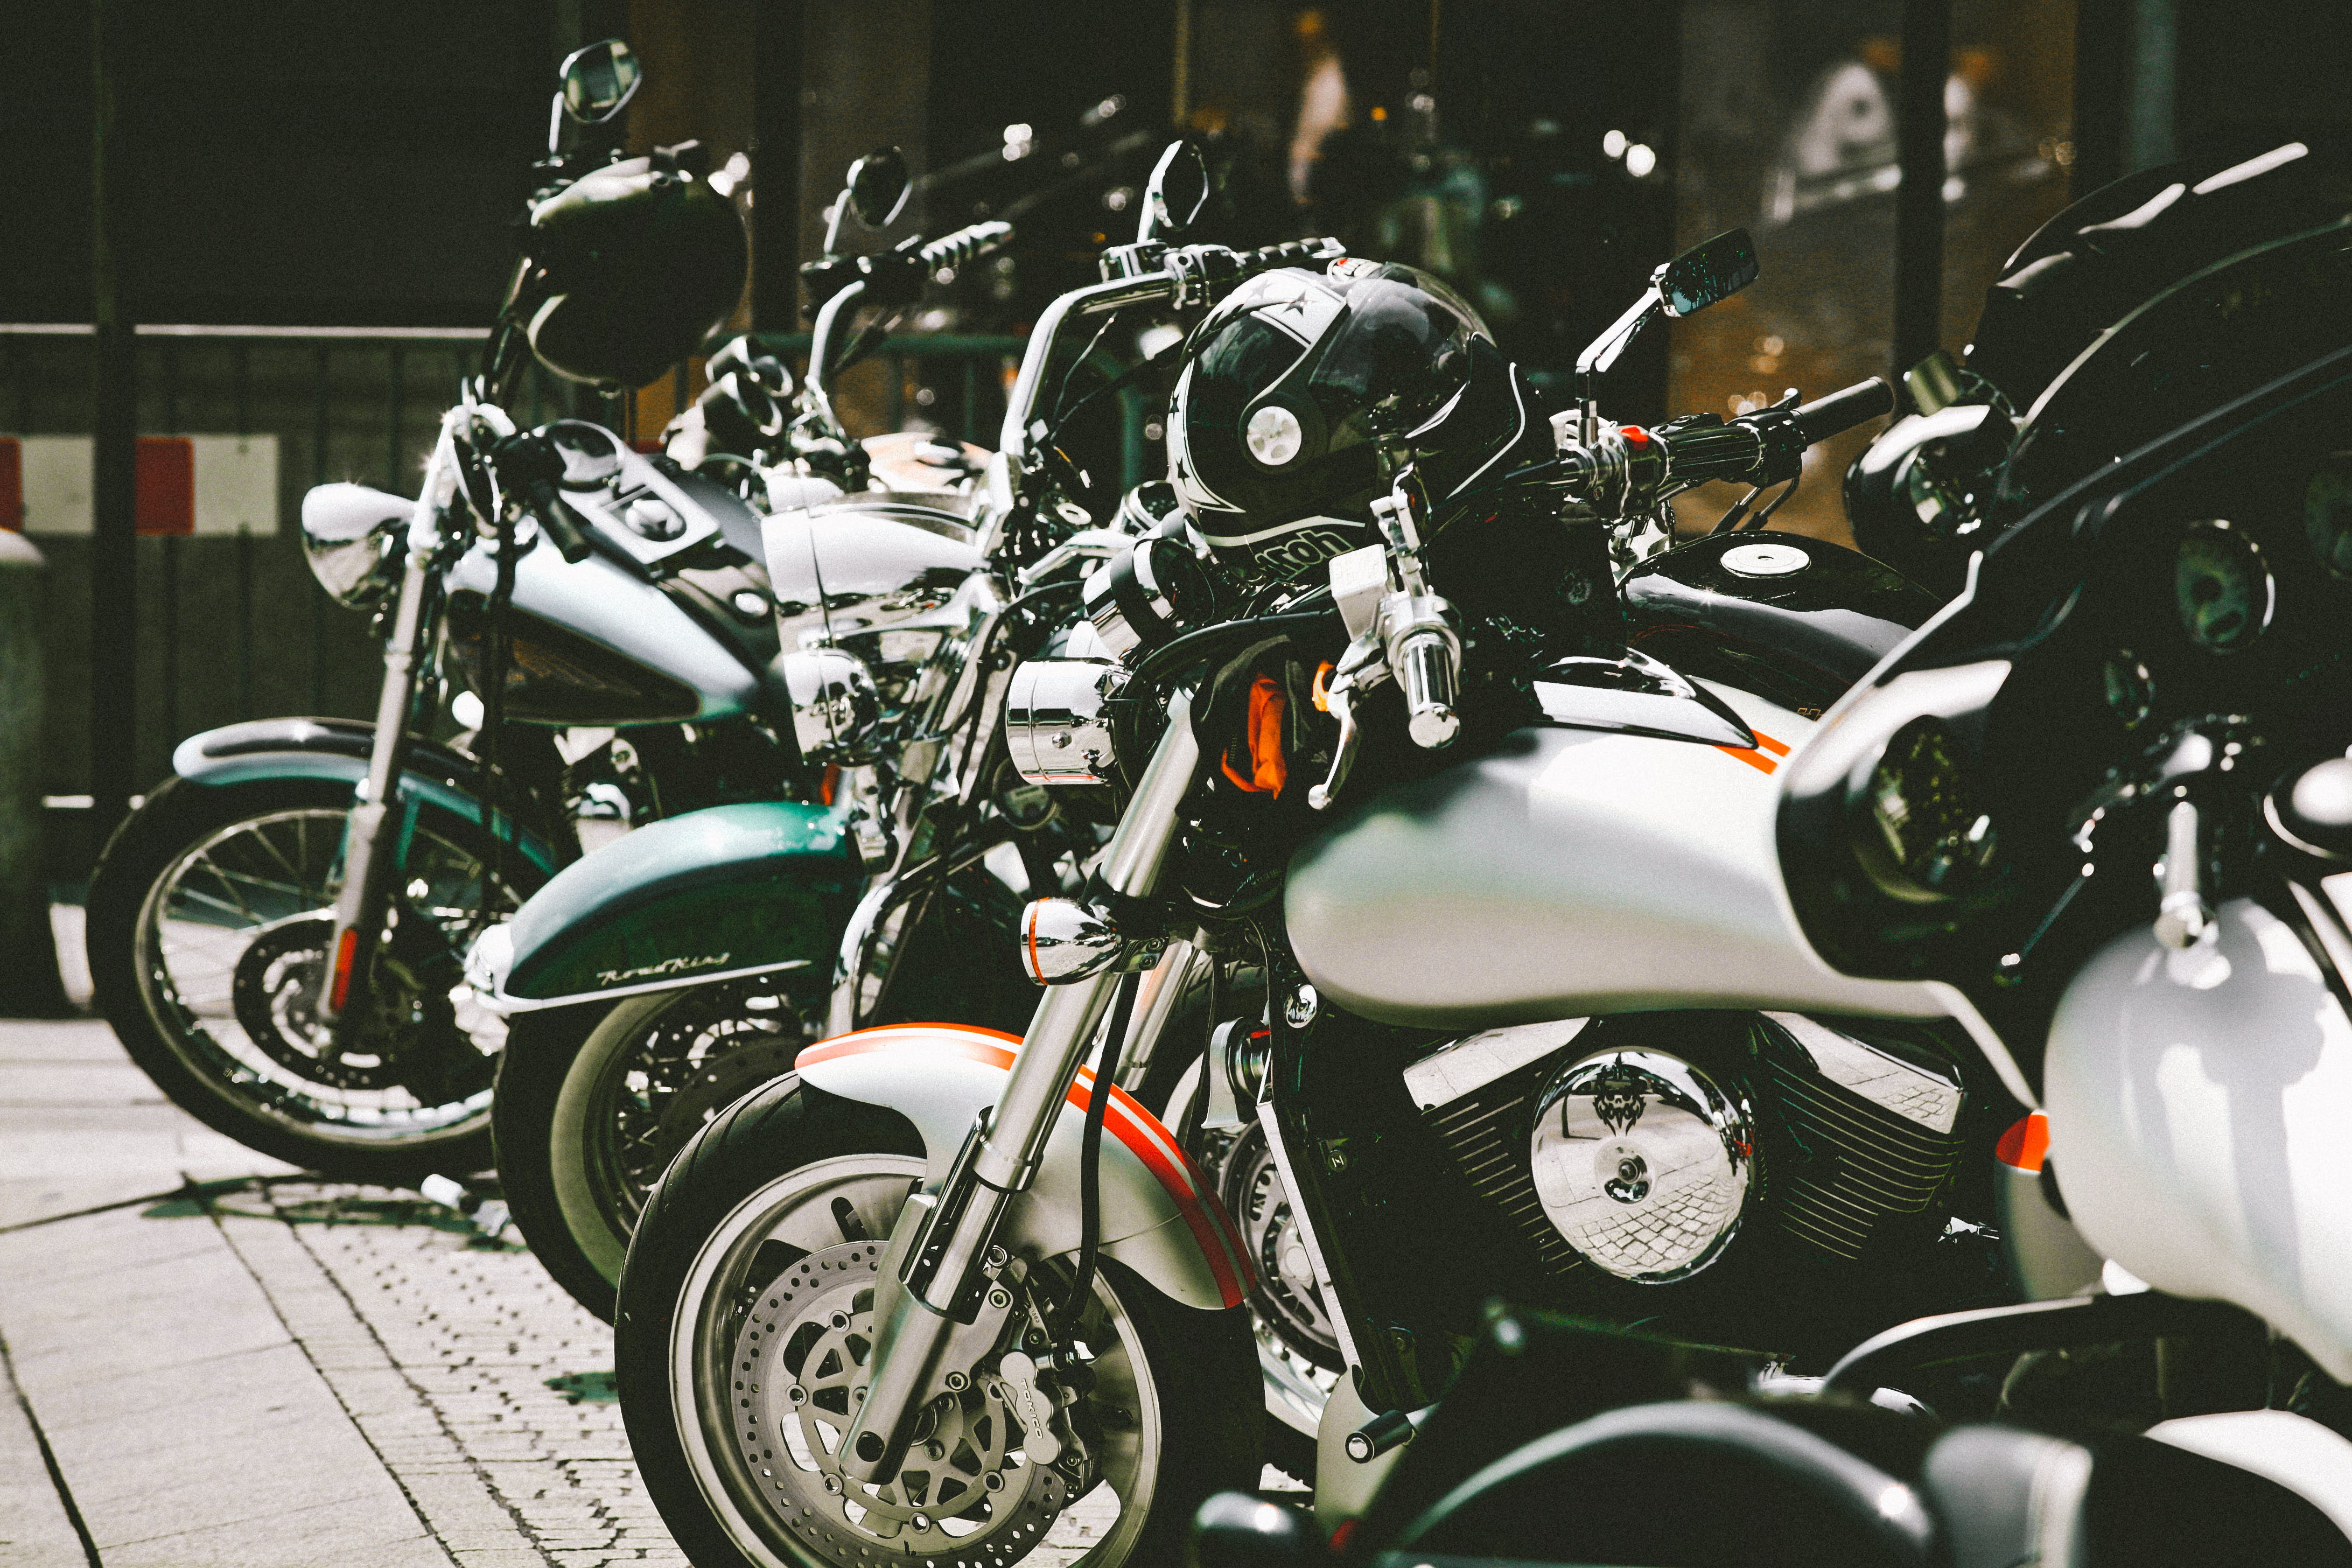 Photo of Motorcycles Parked on Pavement